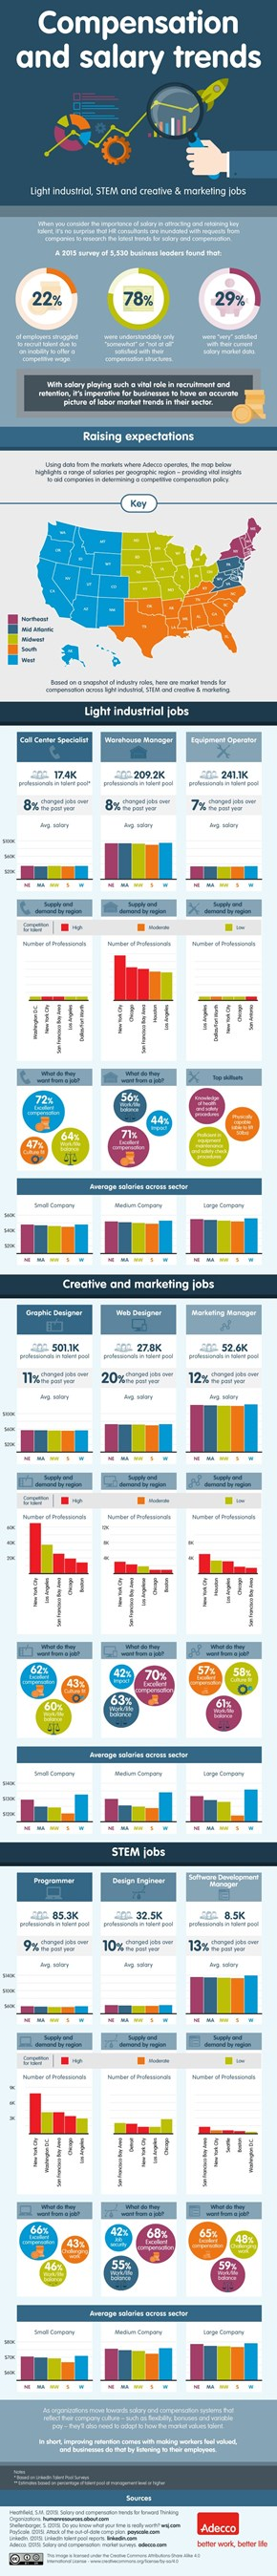 Compensation Trends: Light industrial, STEM and creative & marketing jobs